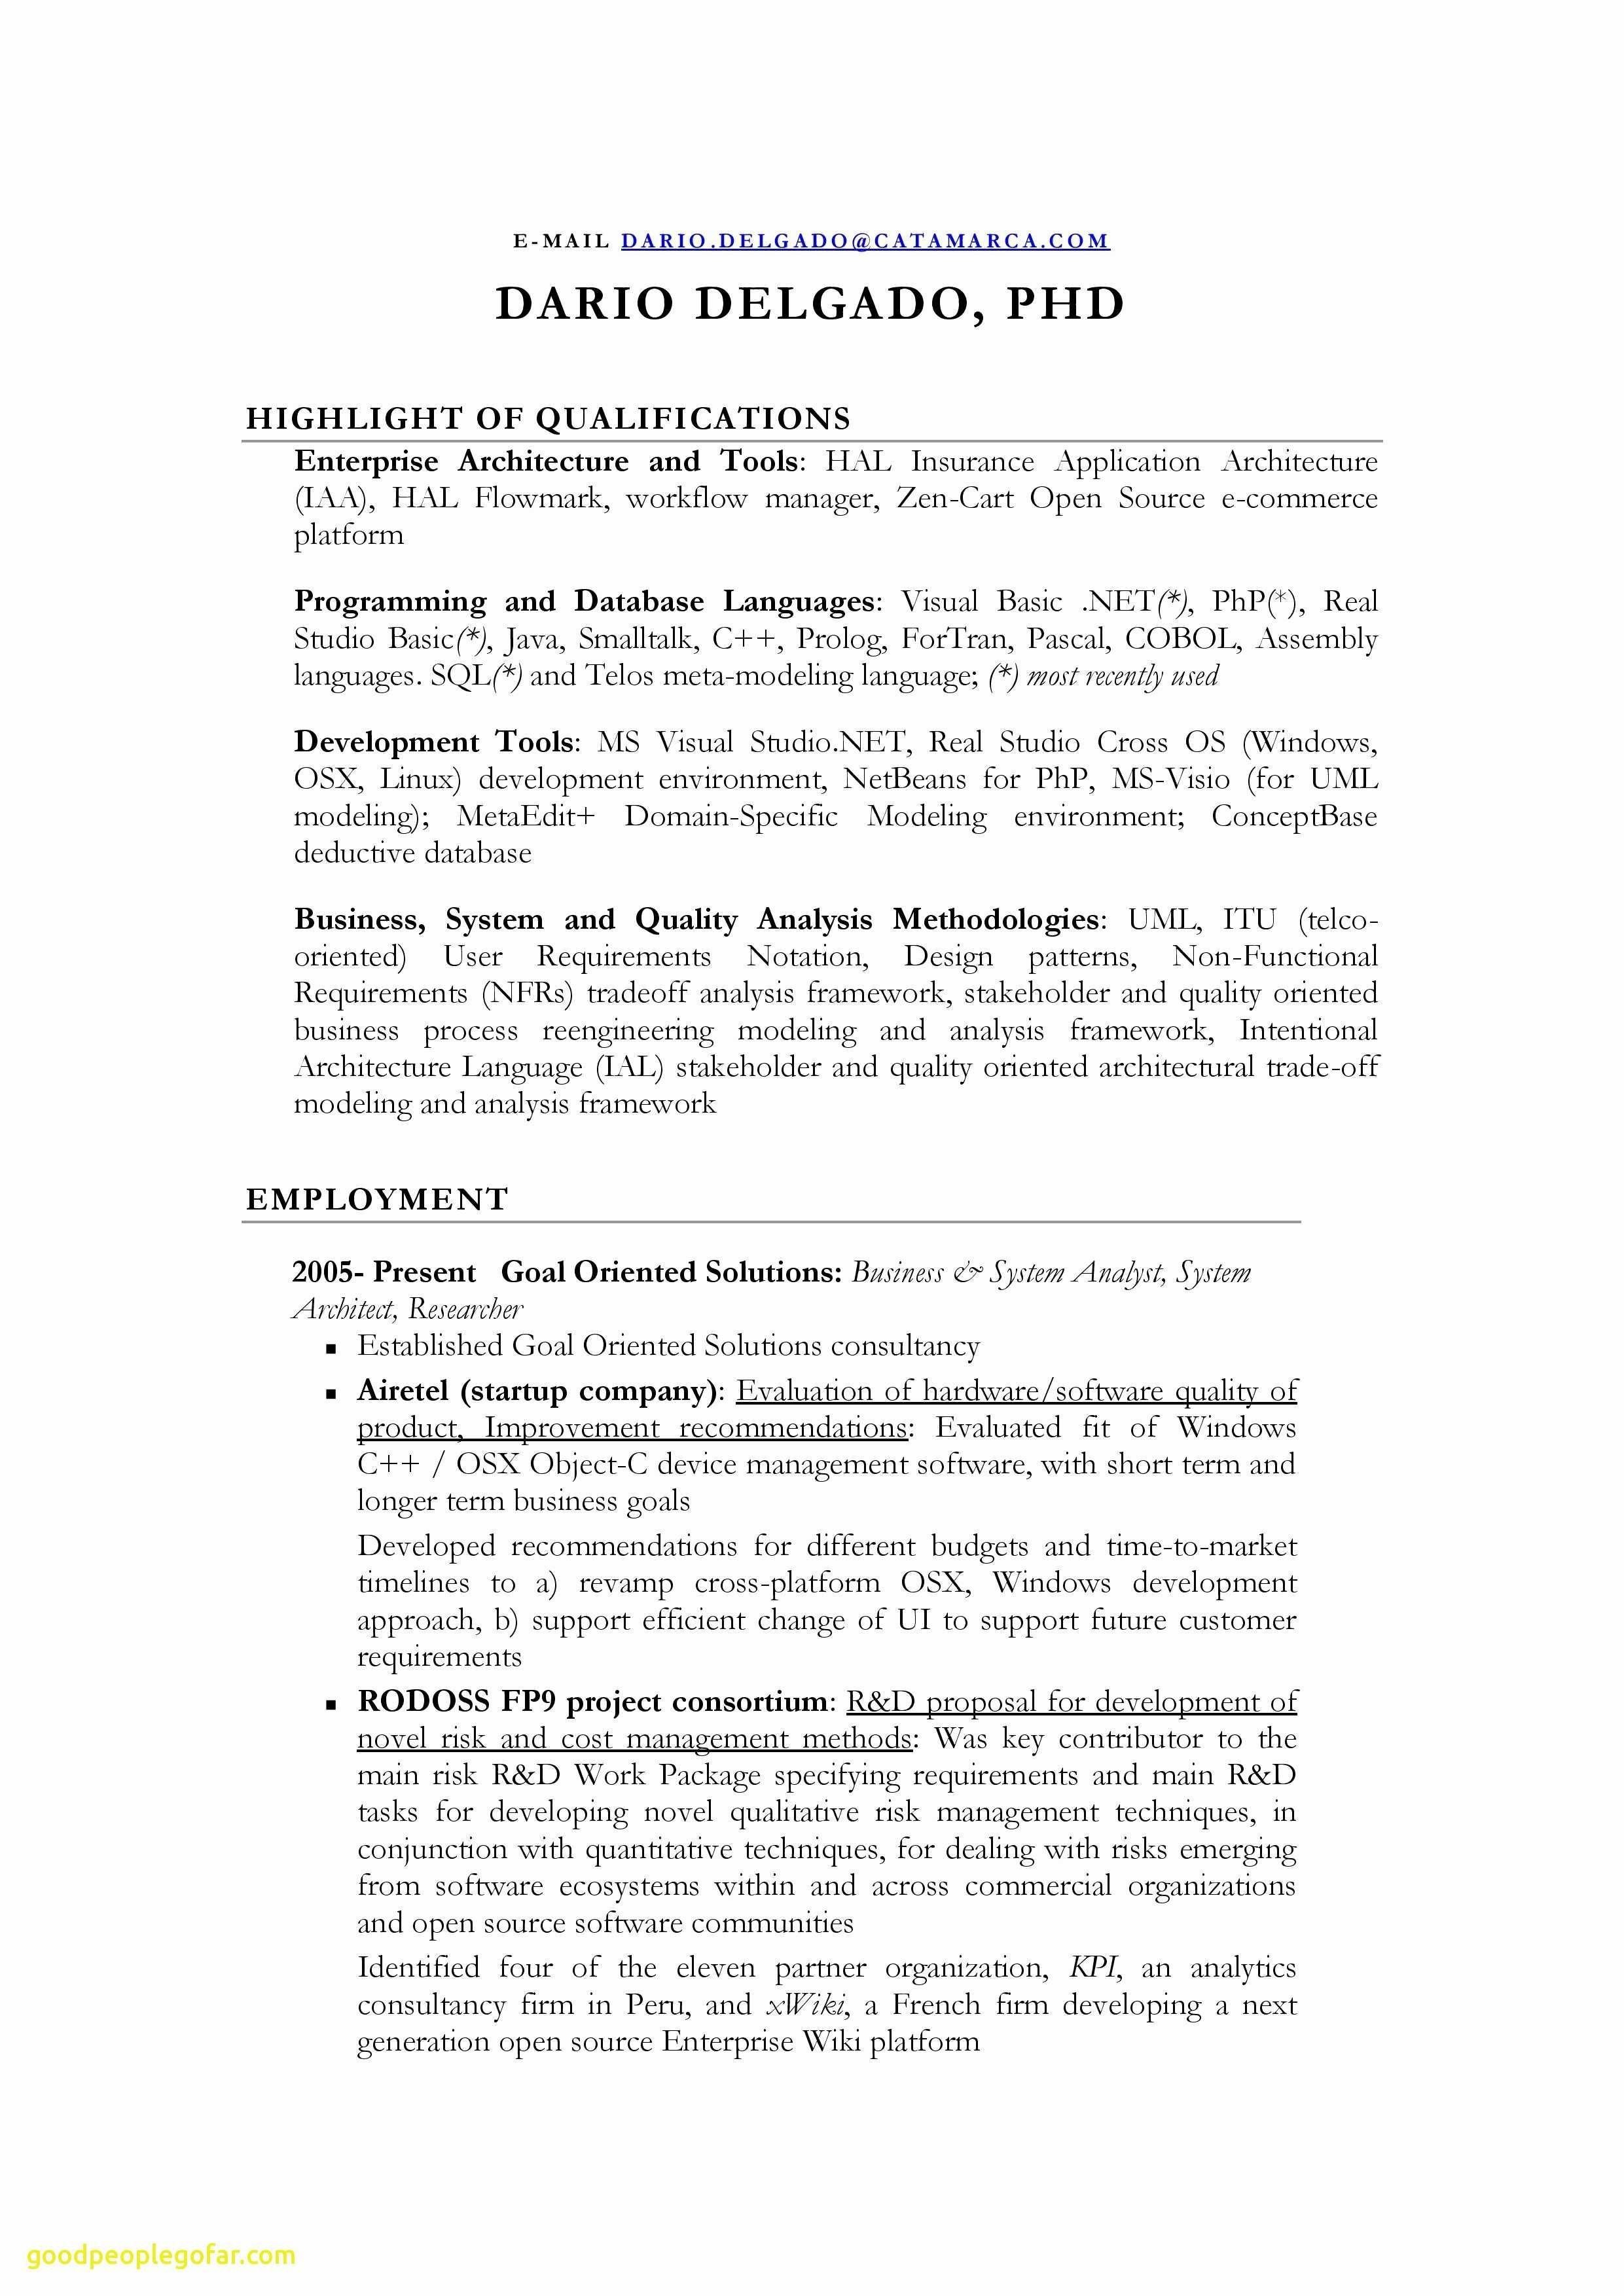 Best Professional Resume Writers - Professional Resume Writers Los Angeles Resume Resume Examples